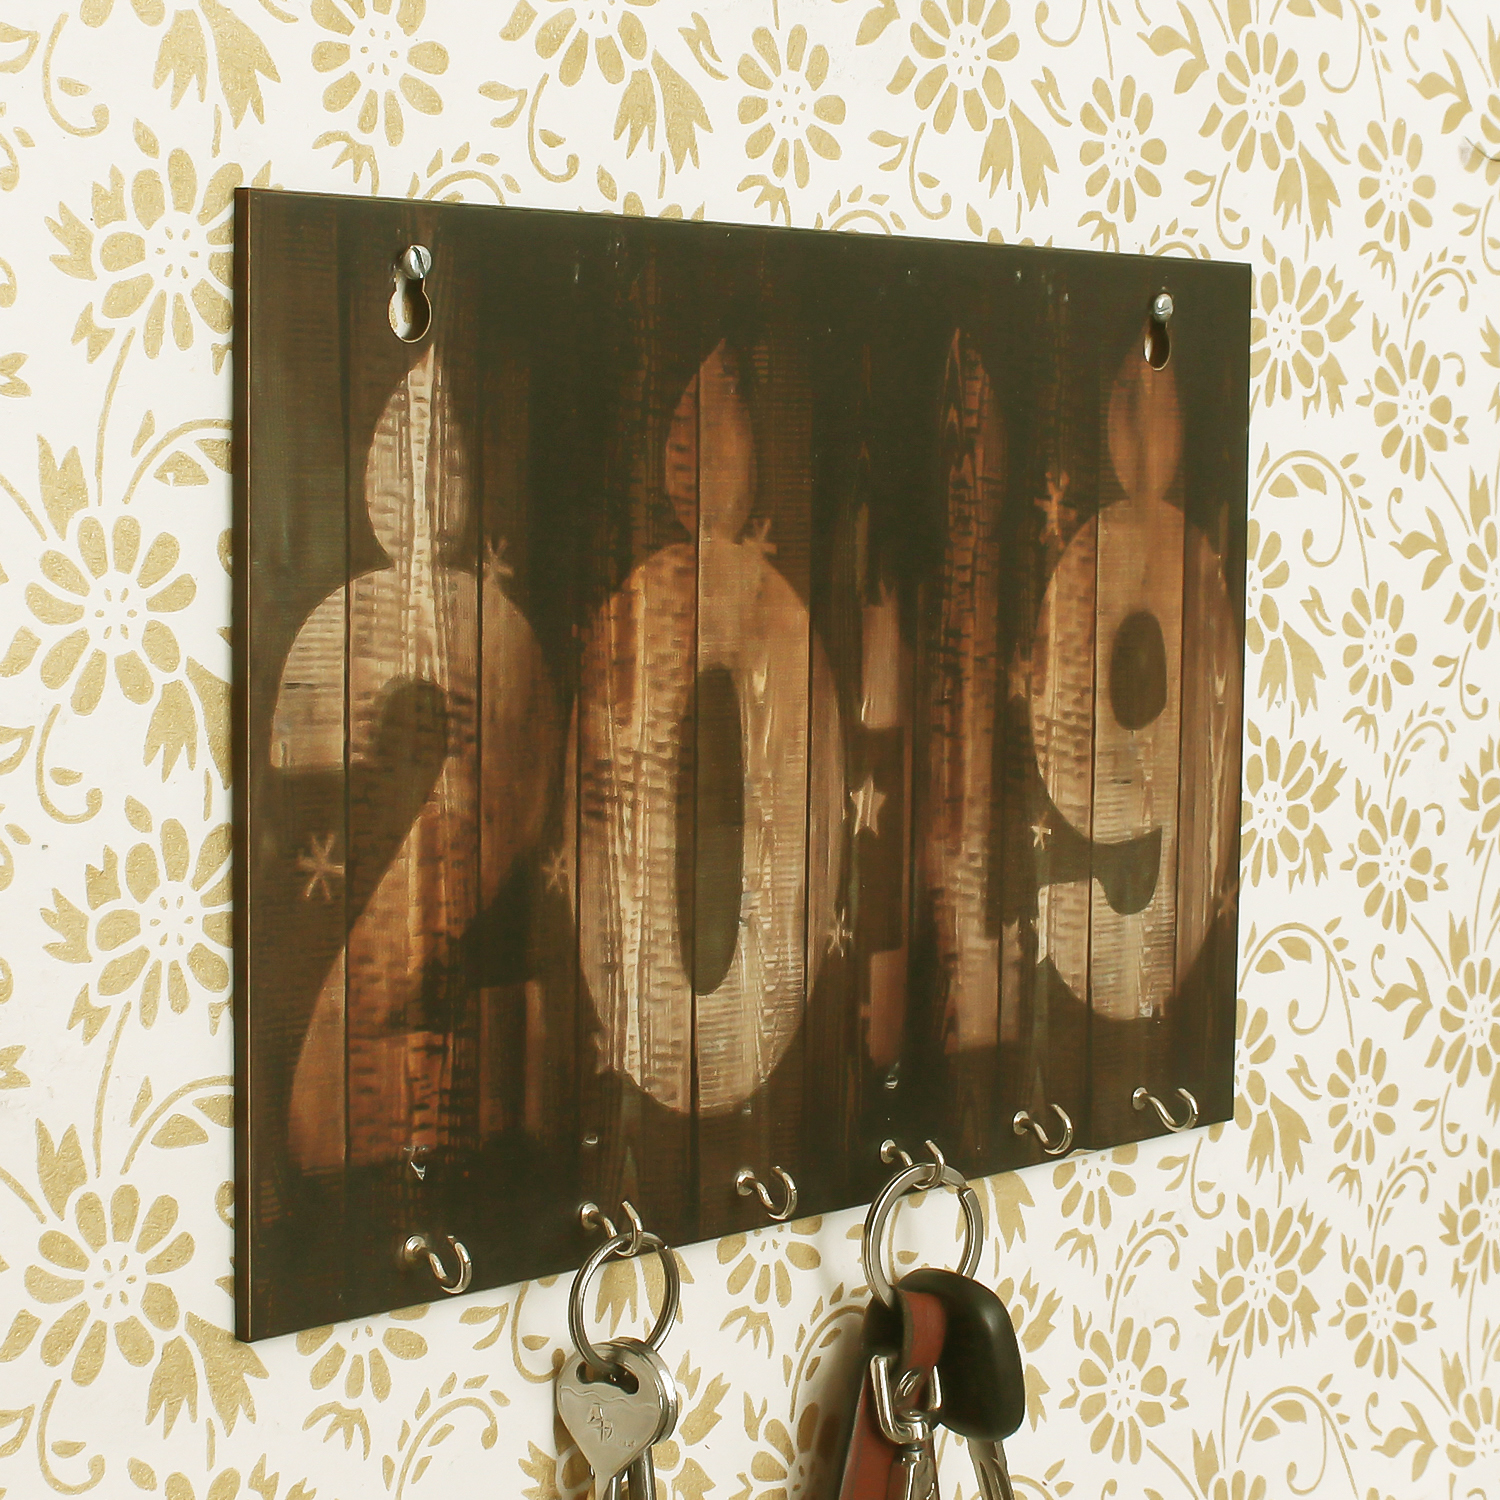 2019 Theme Wooden Key Holder with 6 Hooks Indian Home Decor